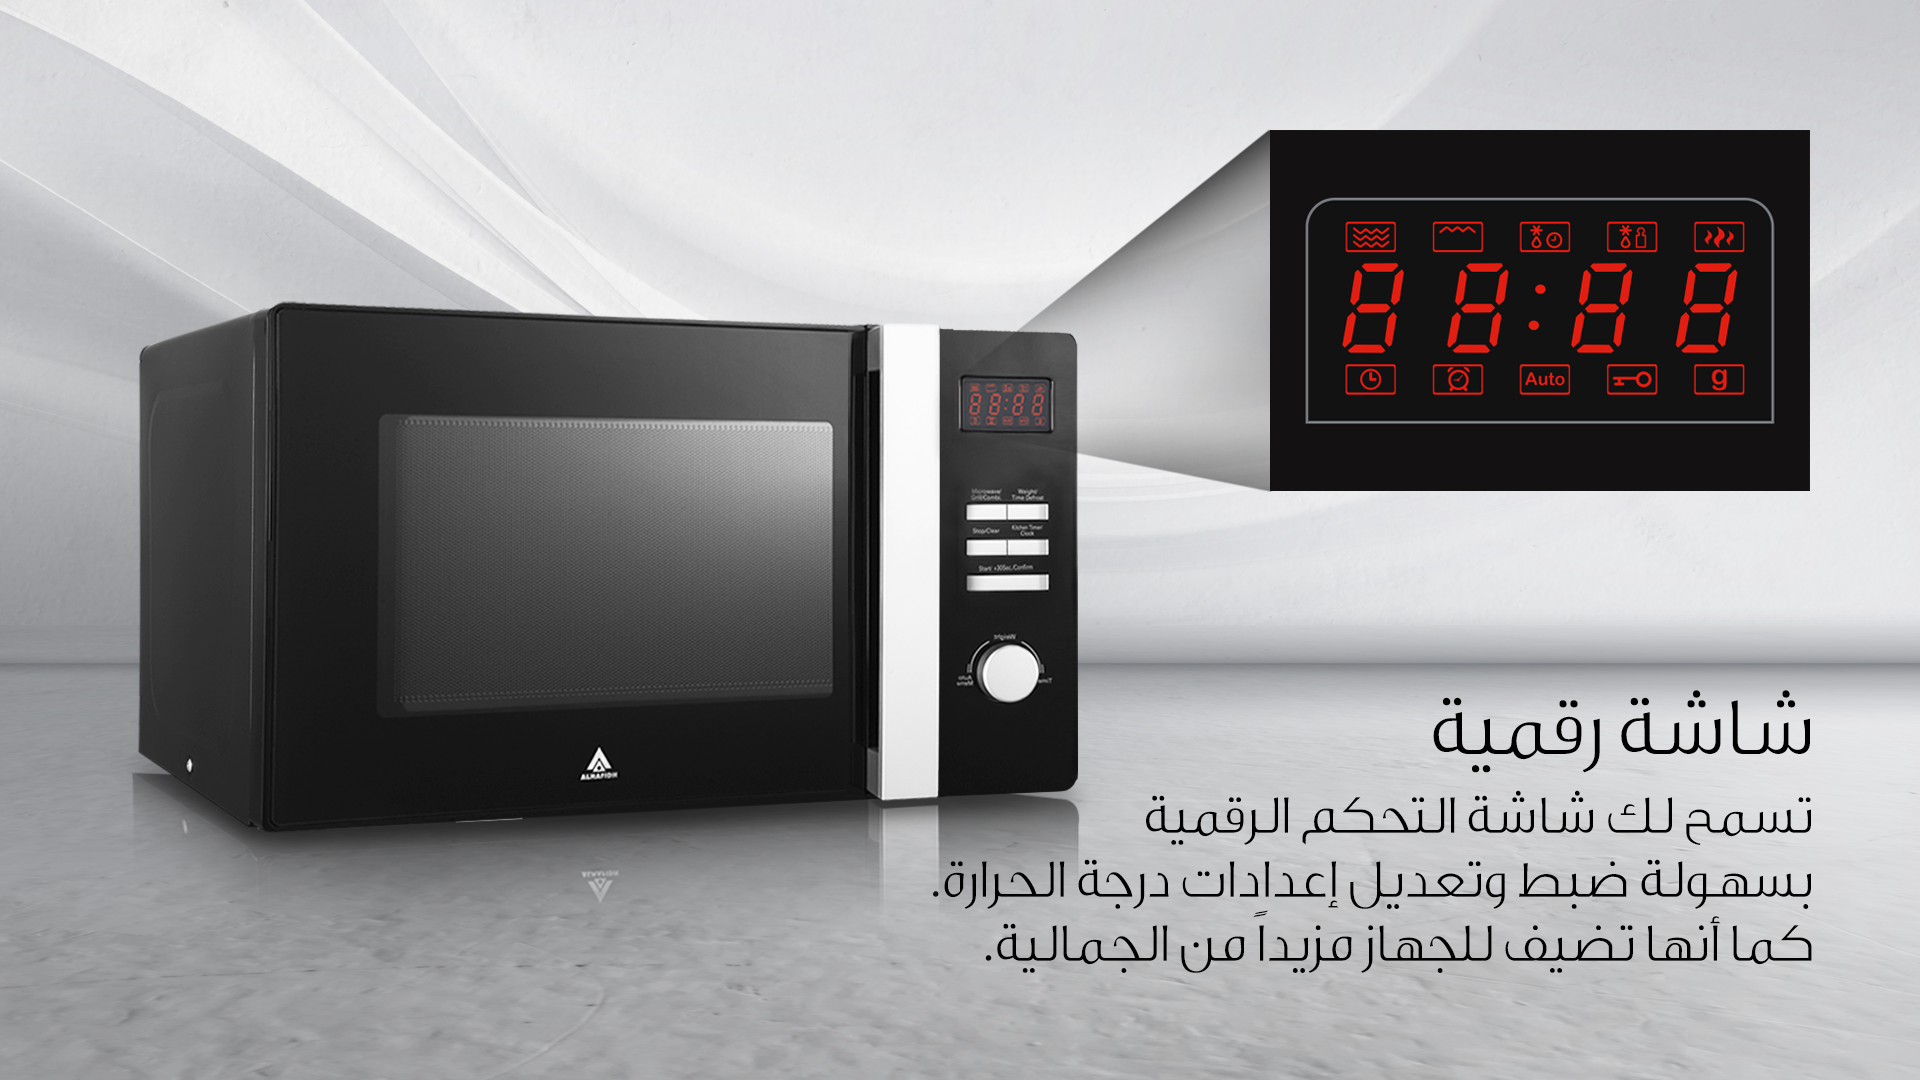 Microwave Oven with Digital Screen